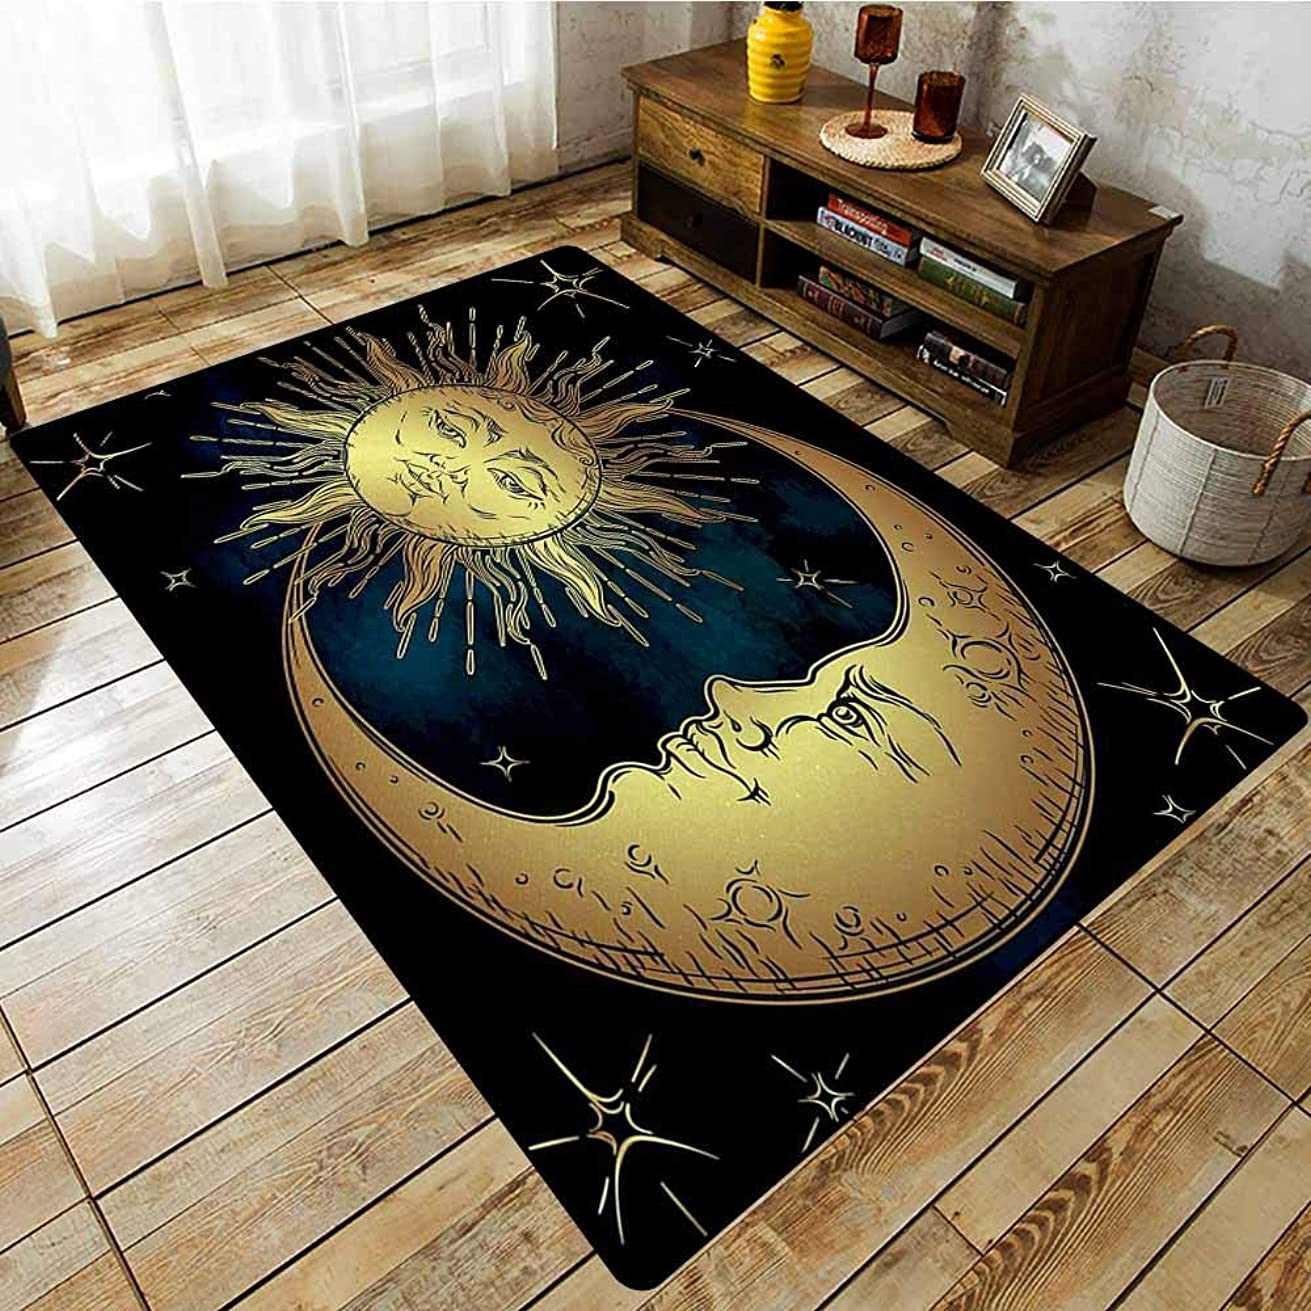 Classroom Rug,Psychedelic Sacred Moon and Sun in Antique Style Lunar Myth Astrology Zen Art Print,Extra Large Rug,3'3